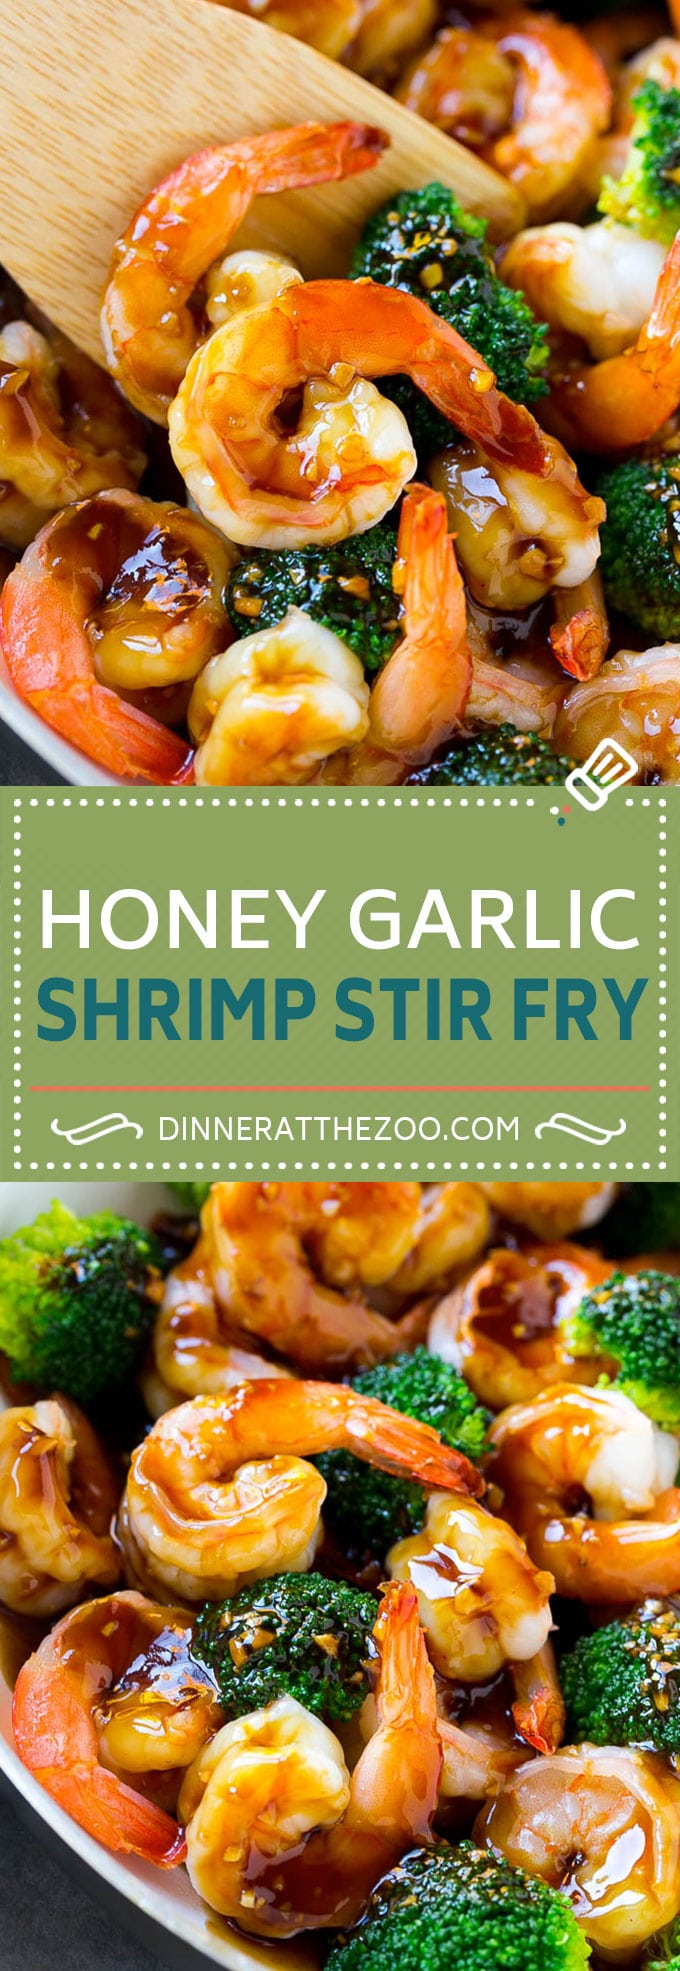 Honey Garlic Shrimp Stir Fry Recipe | Shrimp and Broccoli | Shrimp and Broccoli Stir Fry | Shrimp Stir Fry | Healthy Shrimp Recipe #shrimp #garlic #stirfry #broccoli #healthy #dinner #dinneratthezoo